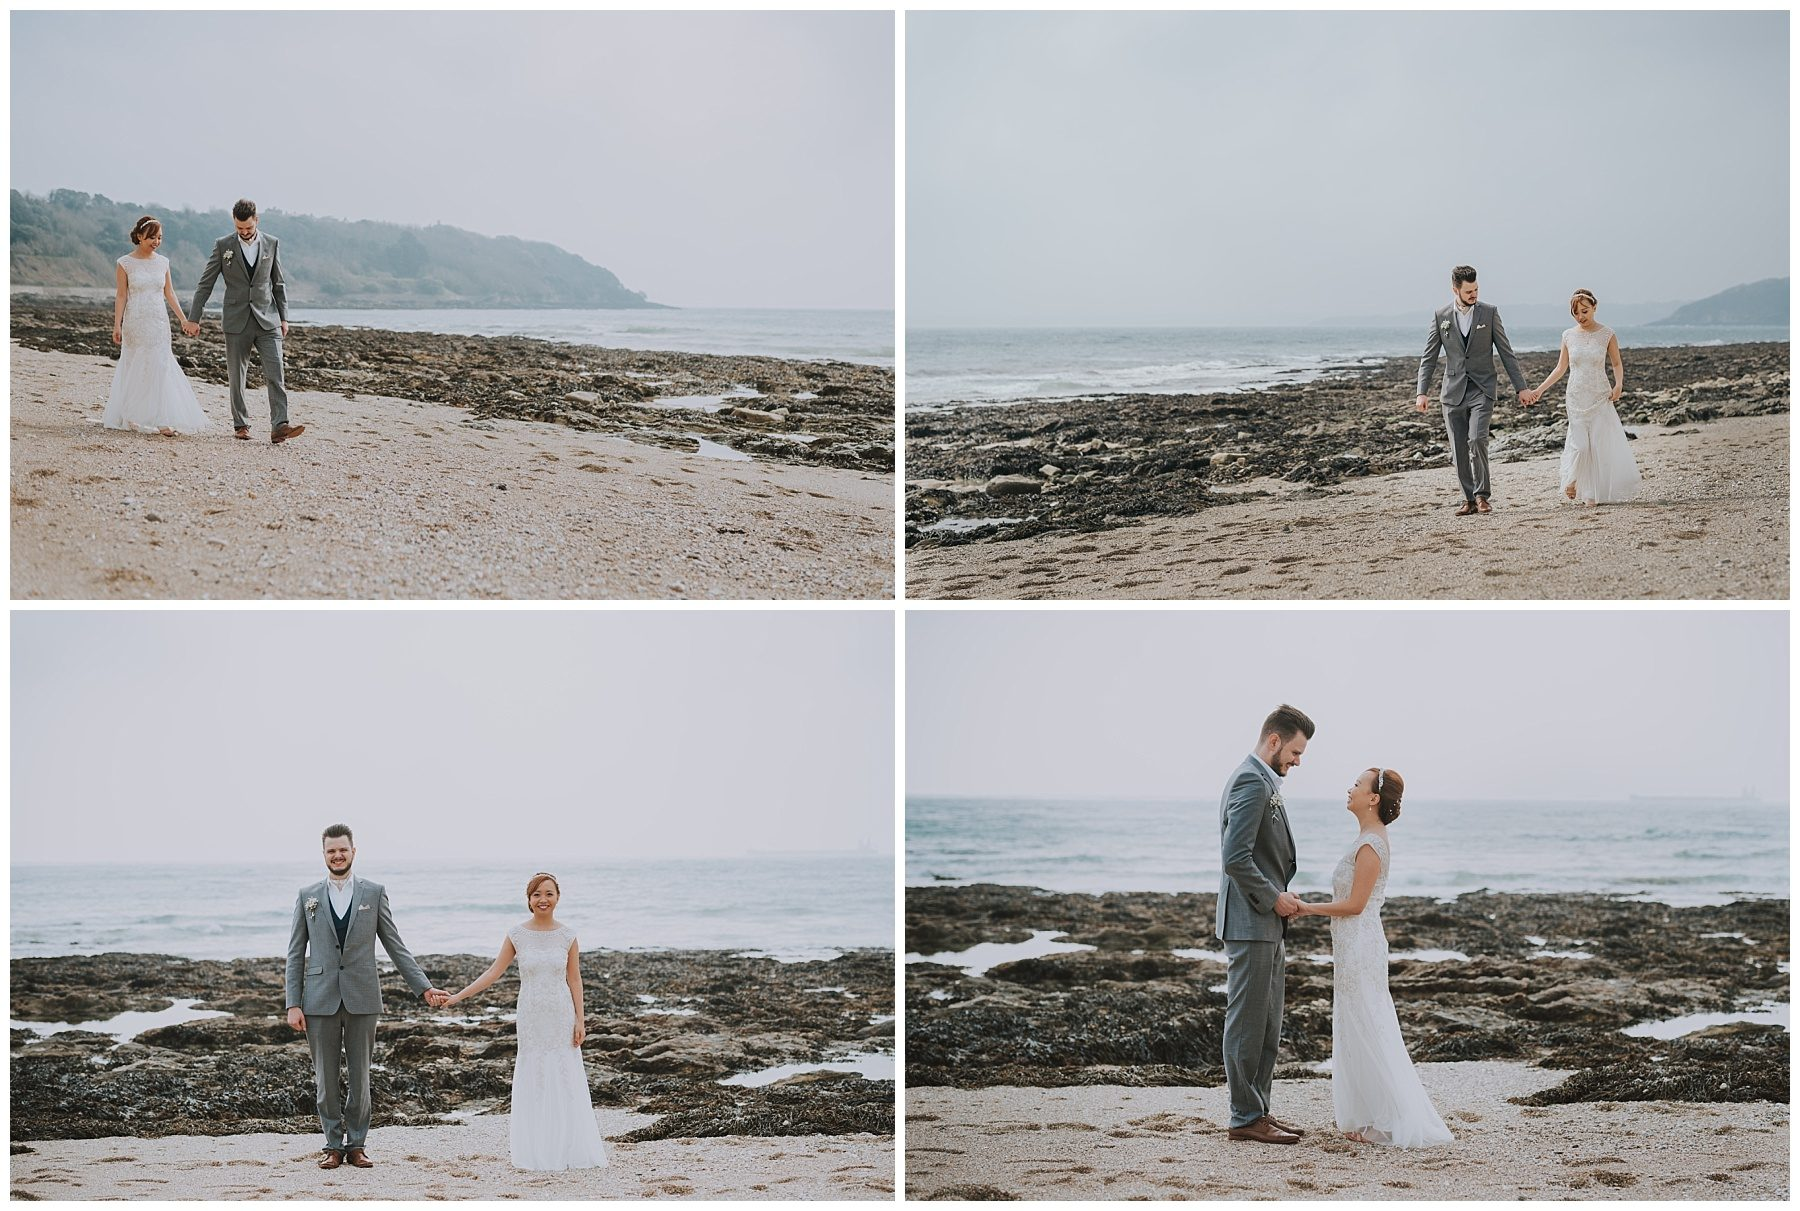 Falmouth Beach Wedding photographer Cornwall